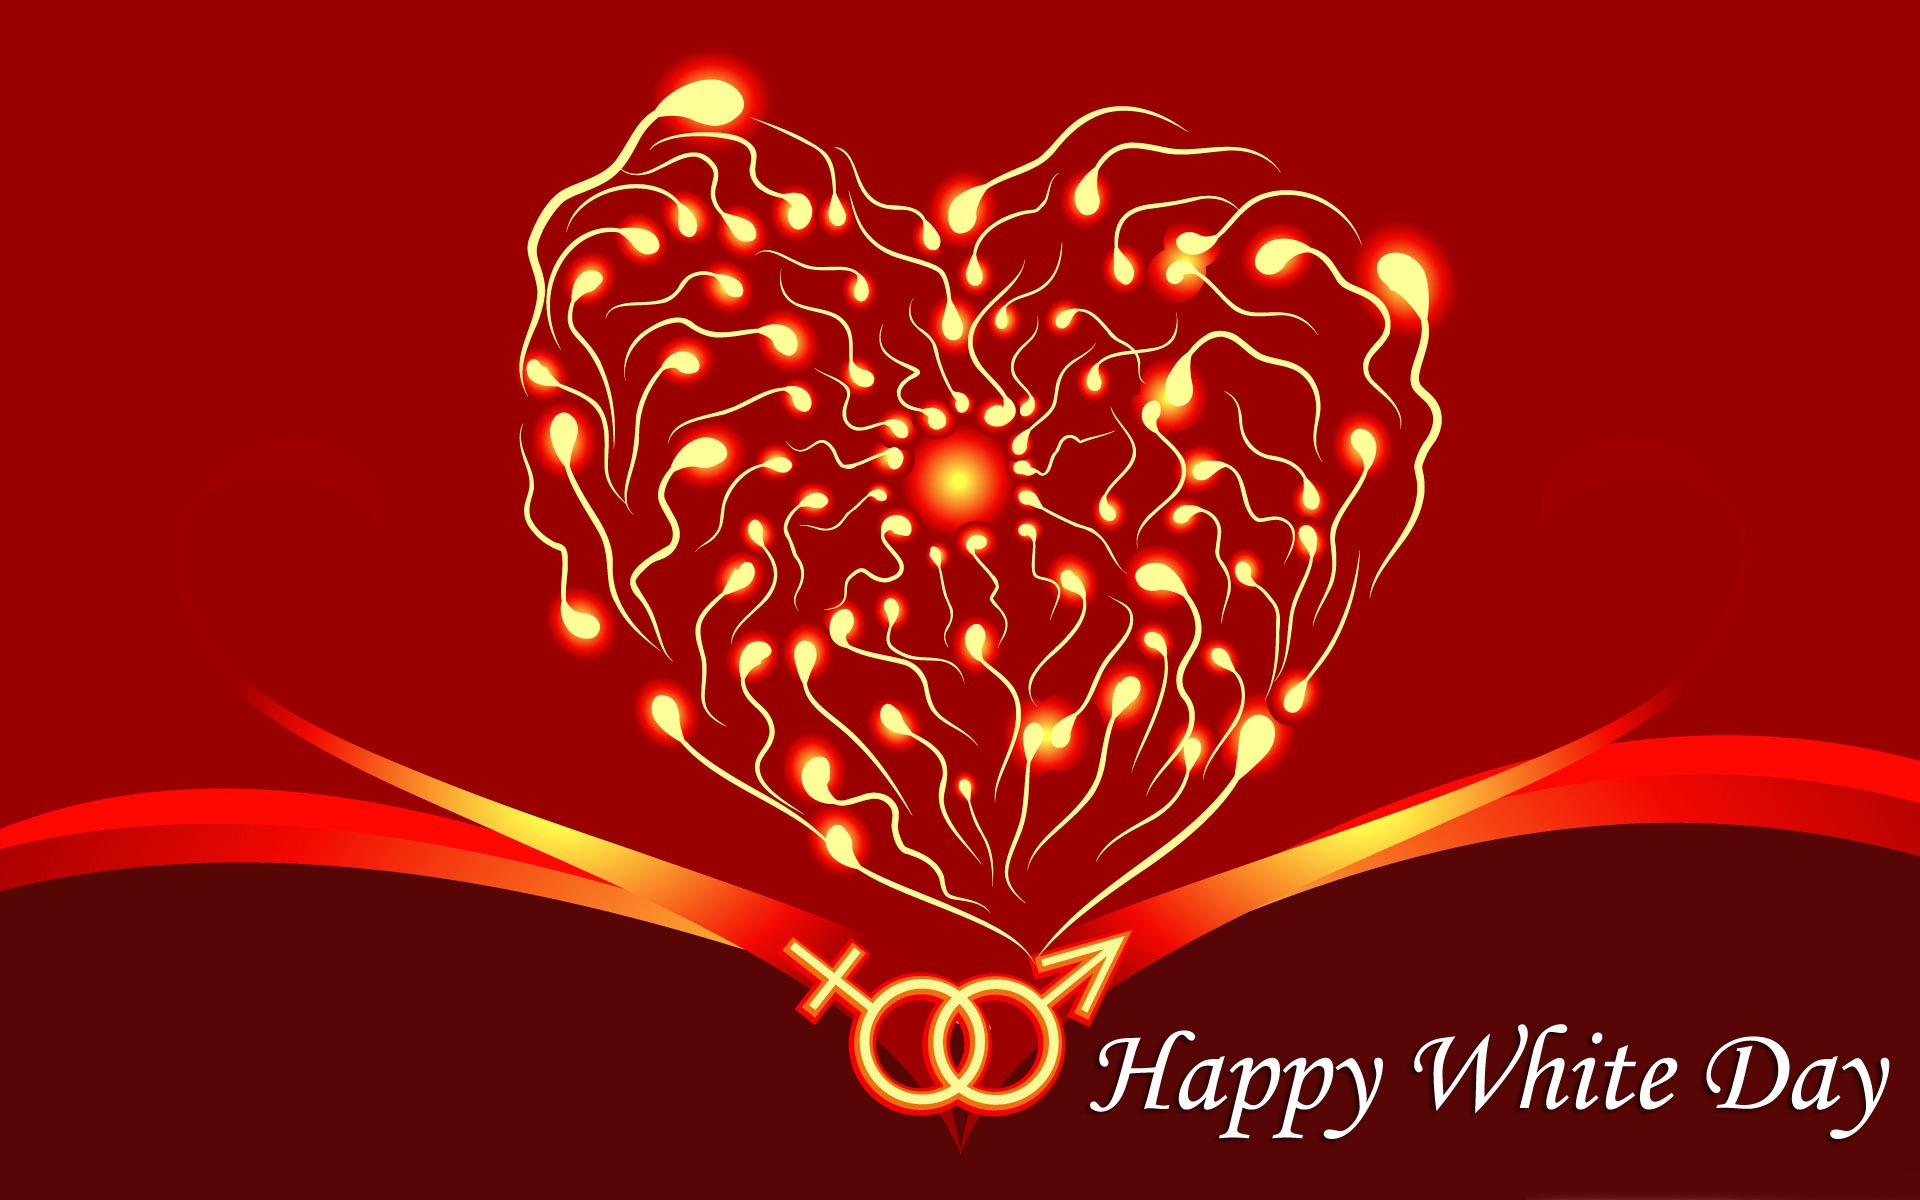 Happy White Day  Widescreen Desktop Wallpaper 1920x1200